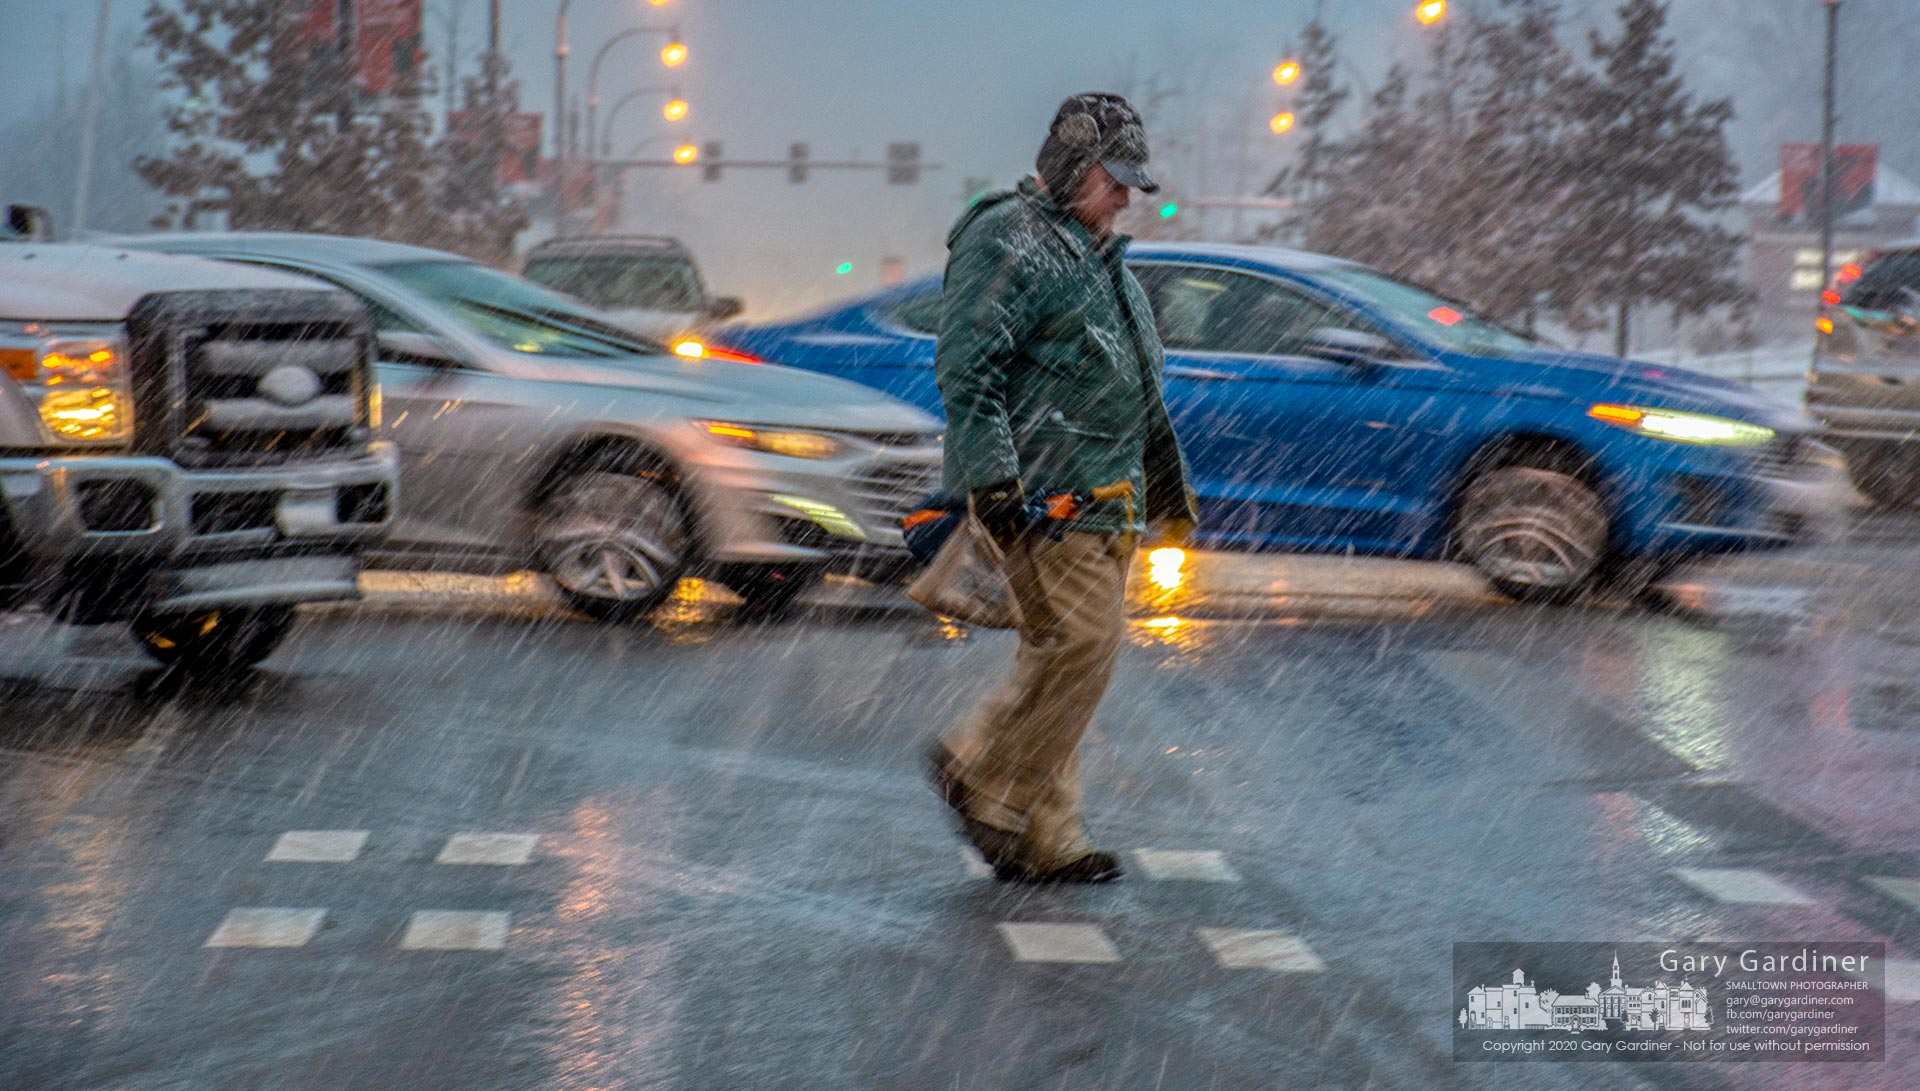 A man crosses State Street during rush hour and an accompany heavy snowfall as he makes his way to pick up a prescription before heading home. My Final Photo for Feb. 12, 2020.